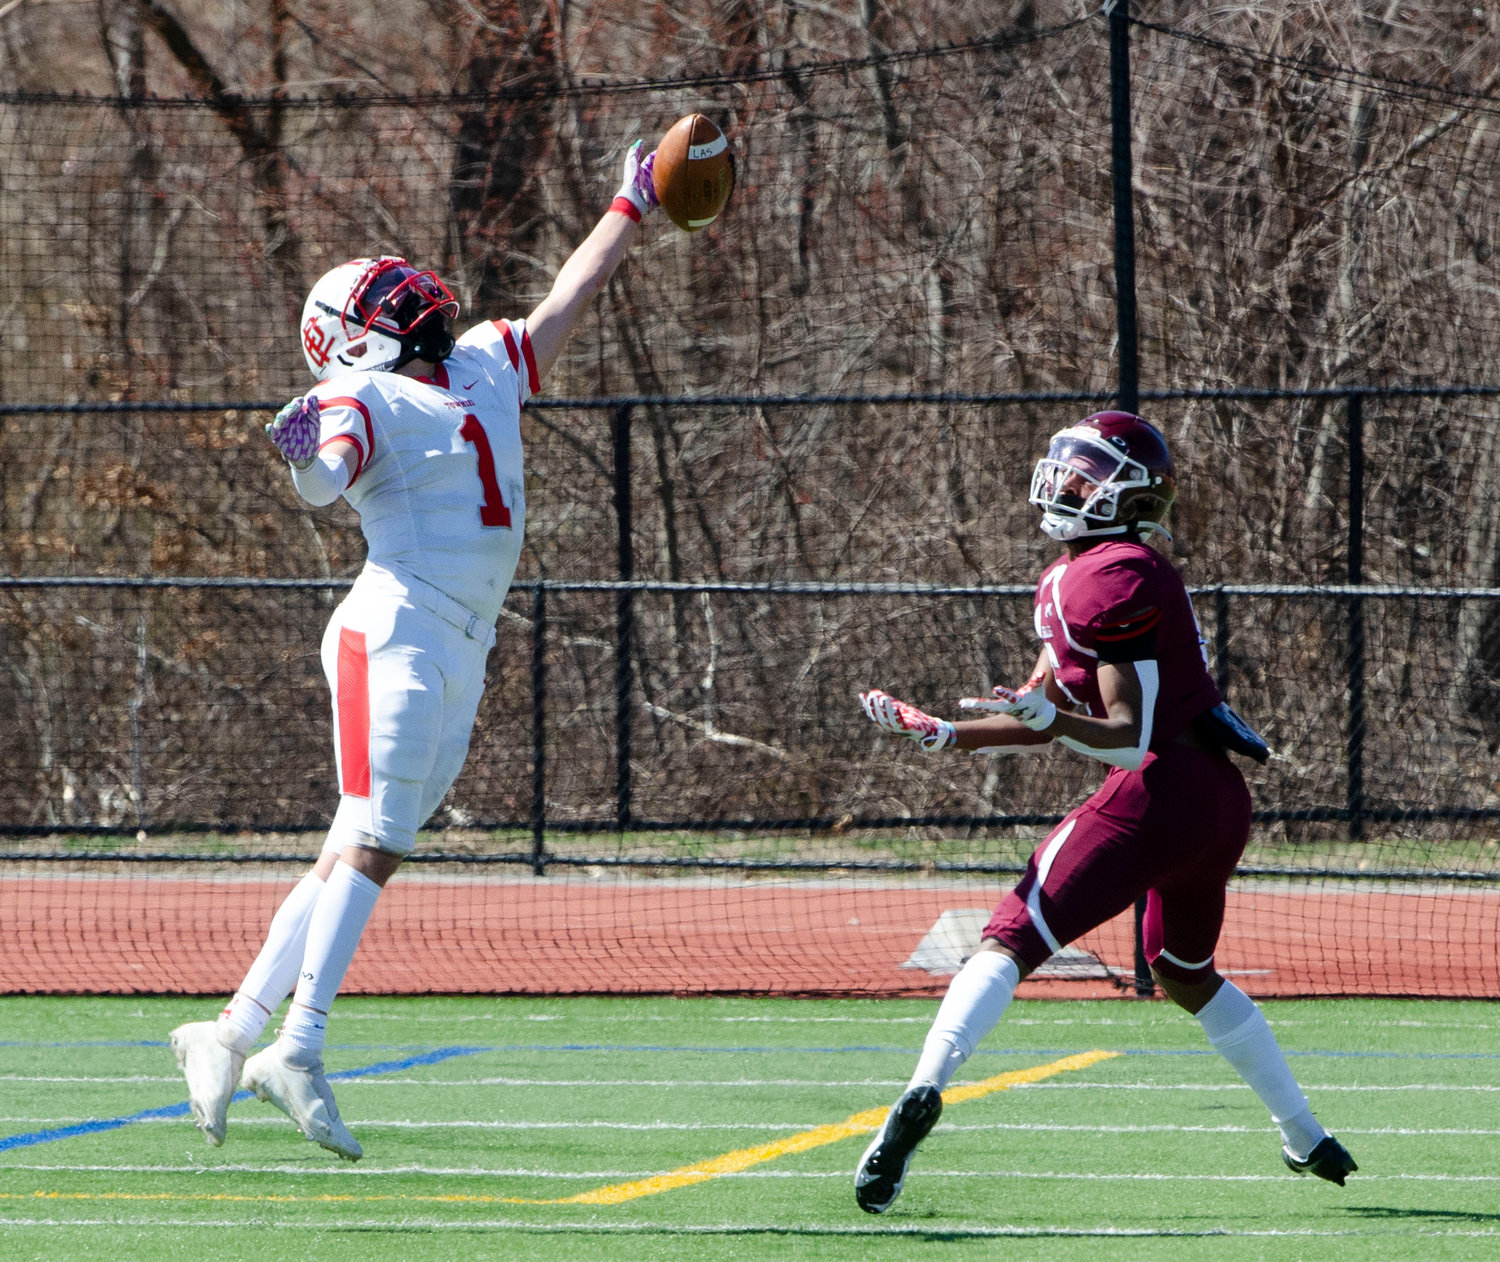 EPHS safety Ilyas Torres breaks up a LaSalle pass attempt during the Townies' 2021 season opening game against the Rams Saturday, March 27.